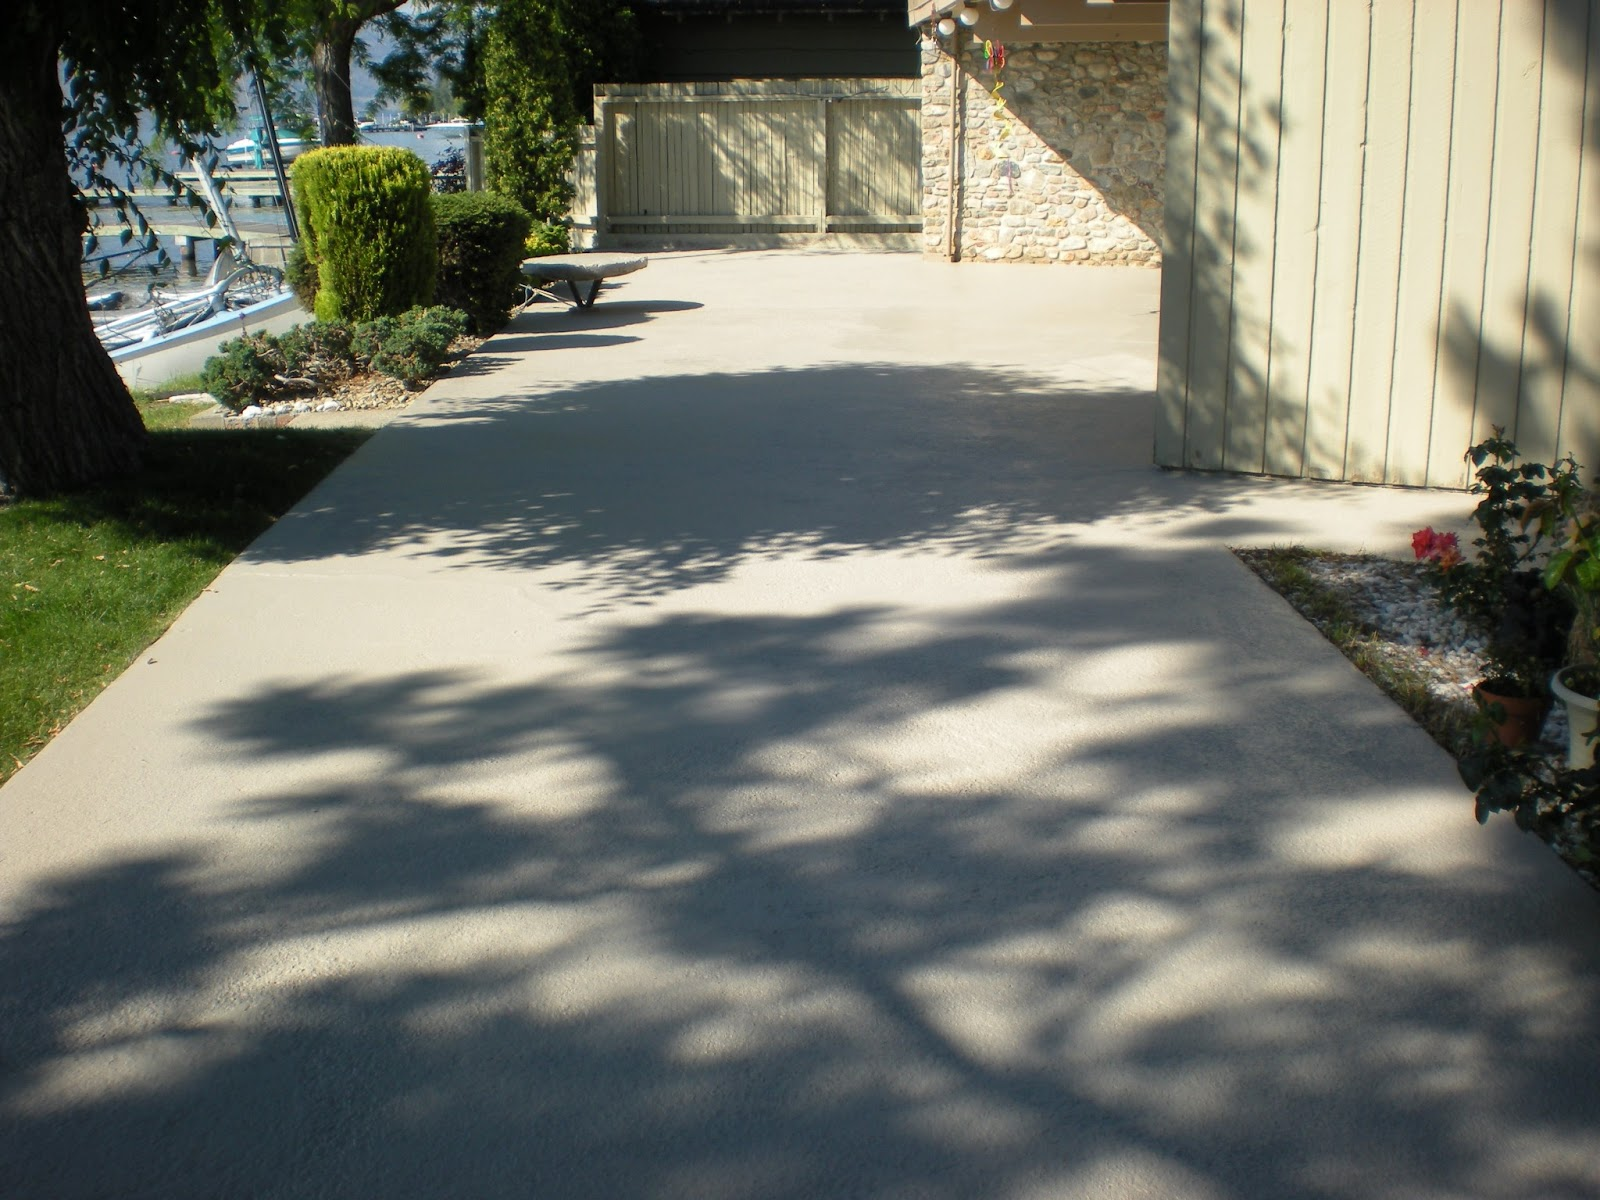 Mode Concrete Mode Concrete Are Experts In The Application Of